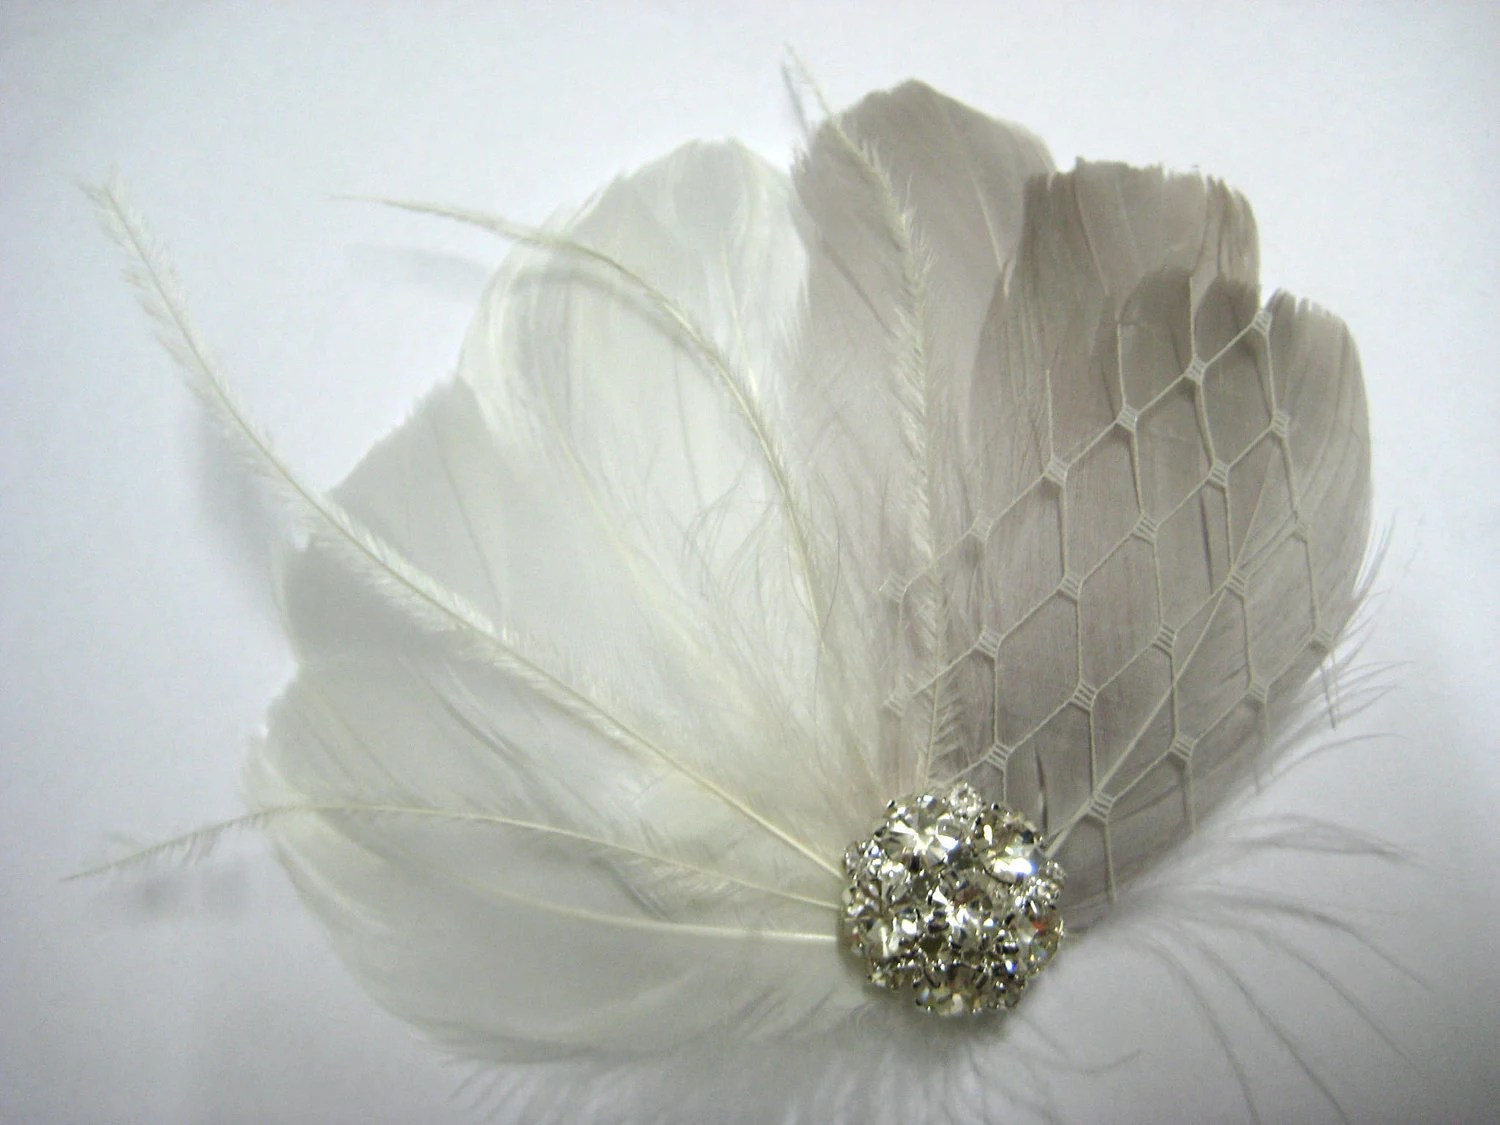 Wedding Bridal Off White Grey Feather Rhinestone Jewel Ivory Veiling Head Piece Hair Clip Fascinator Accessory - exquisitecreations2u